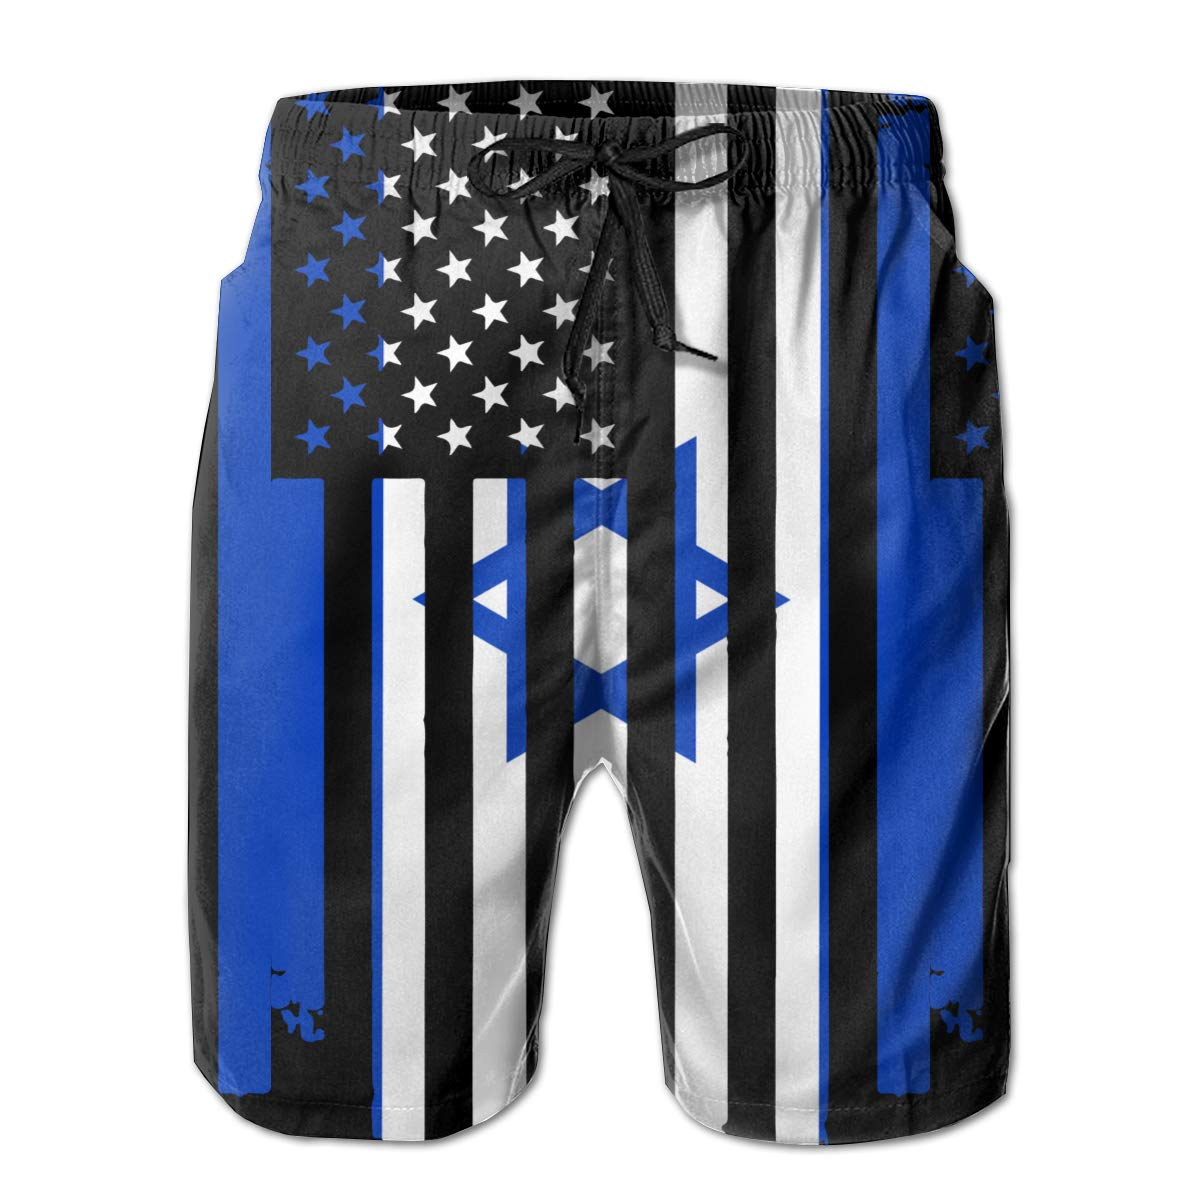 TBVS 79 American Israeli Flag Mens Holiday Party Swim Shorts with Pocket Drawstring